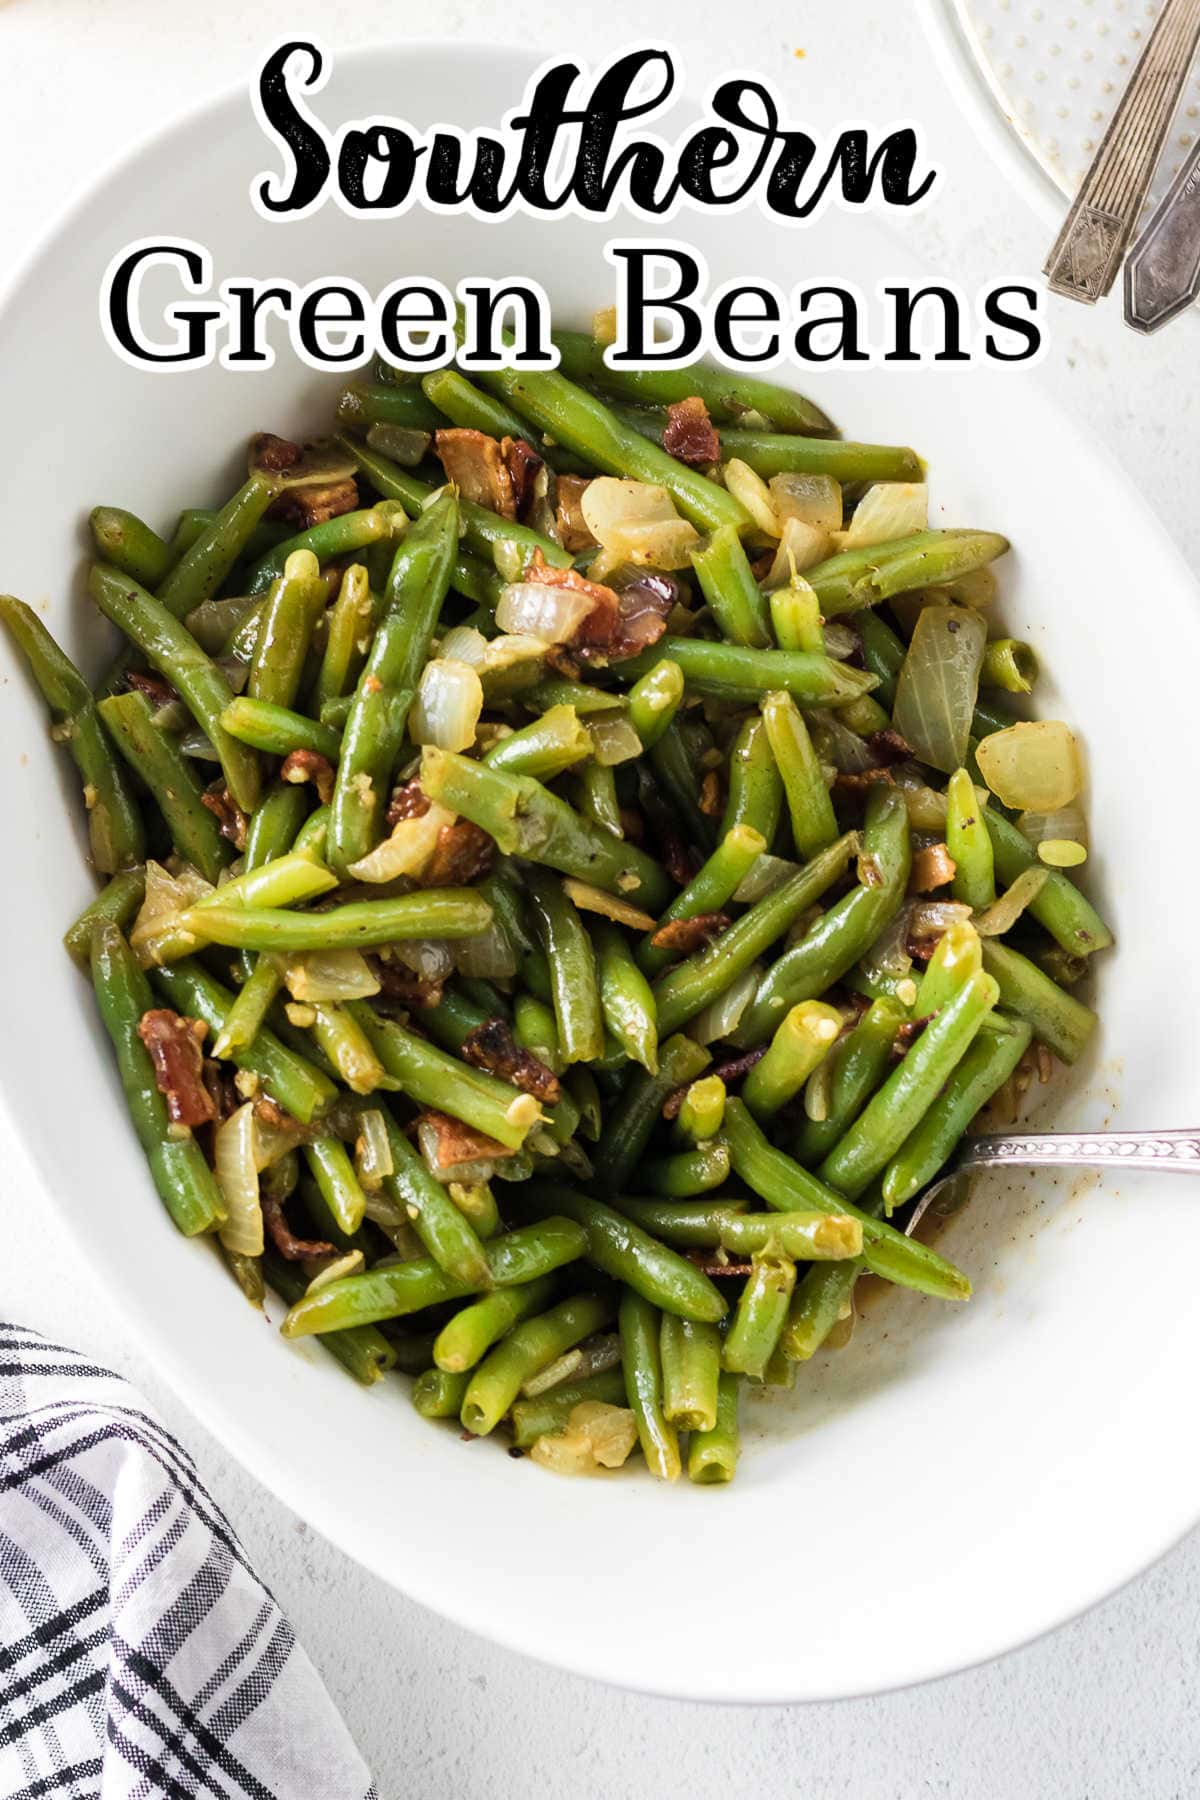 Overhead view of a bowl of green beans with title text overlay.